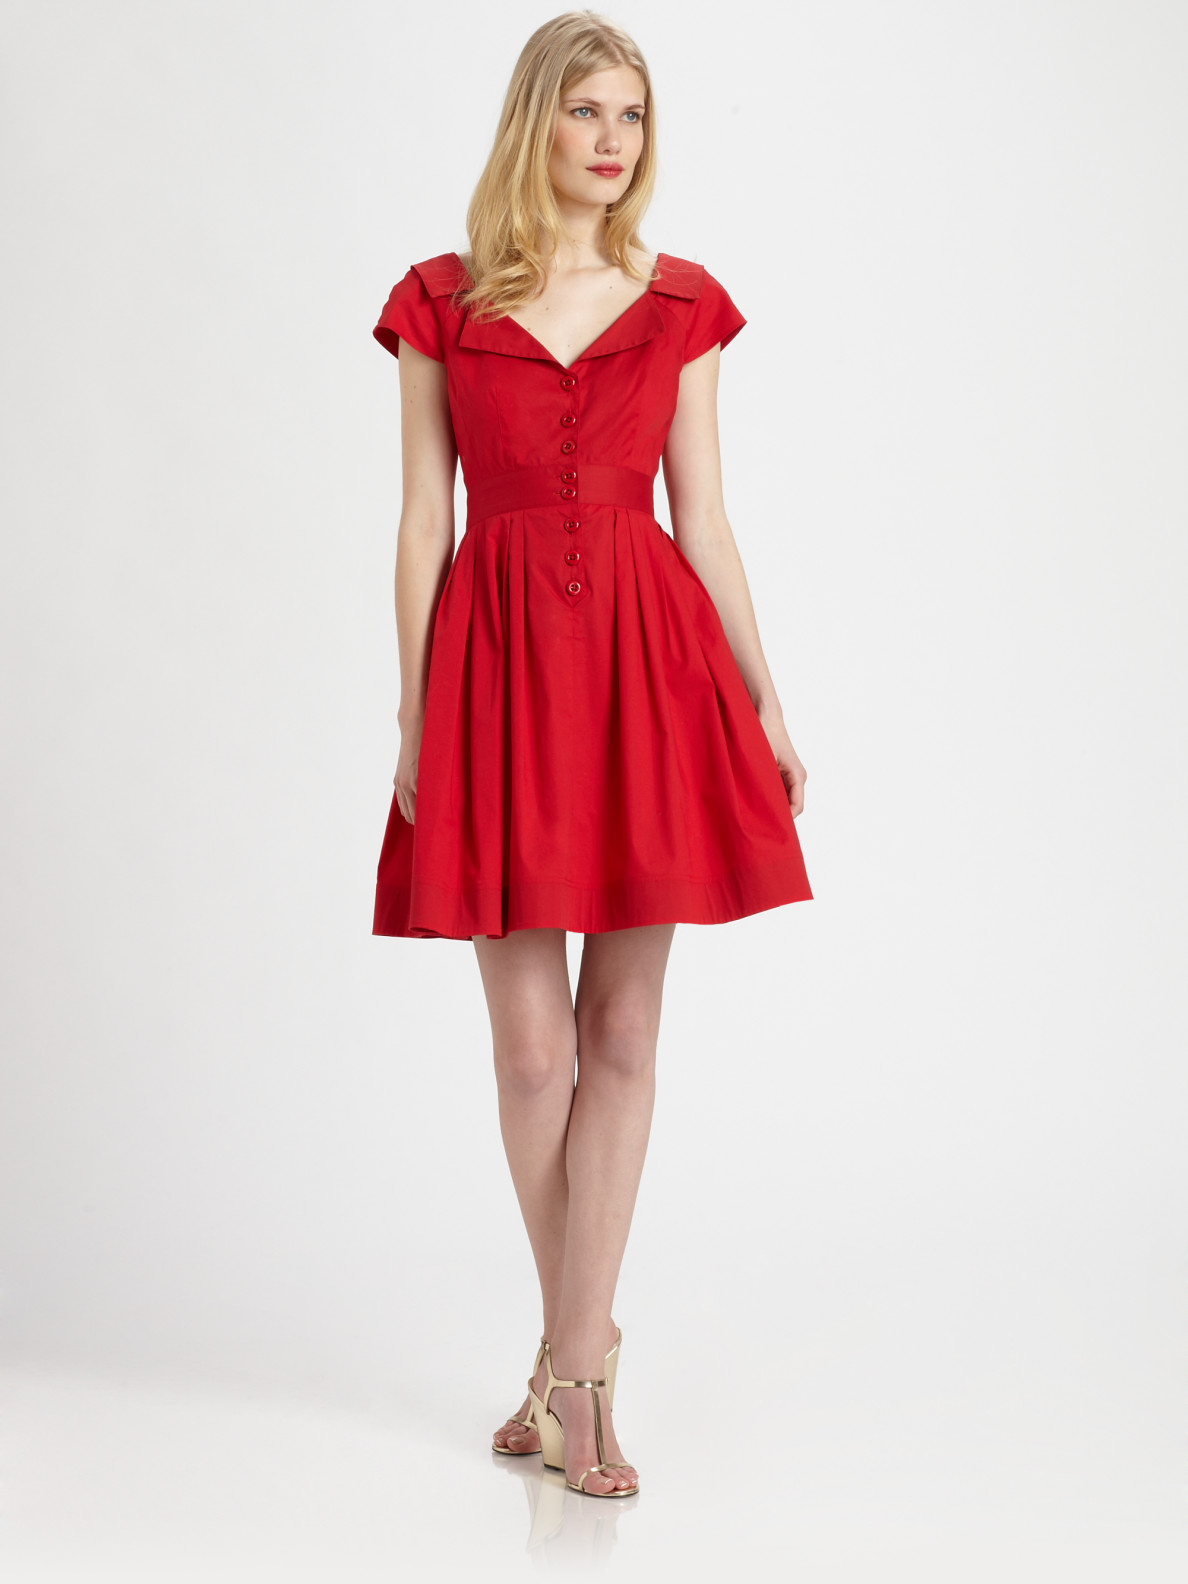 Nanette lepore San Fernando Dress in Red | Lyst